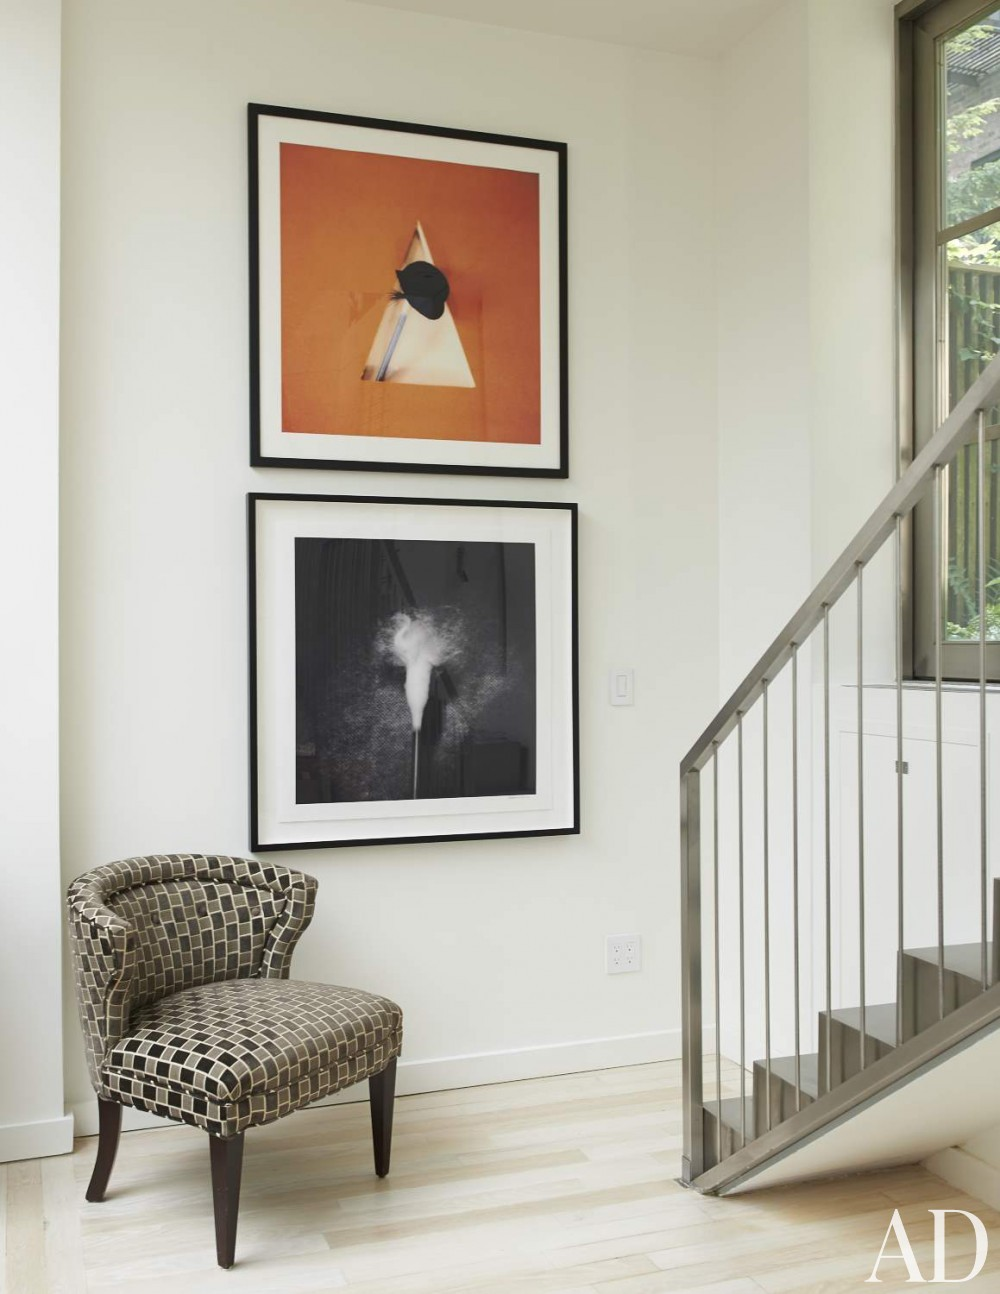 Staircase/Hallway by Alexandra Angle in New York, NY